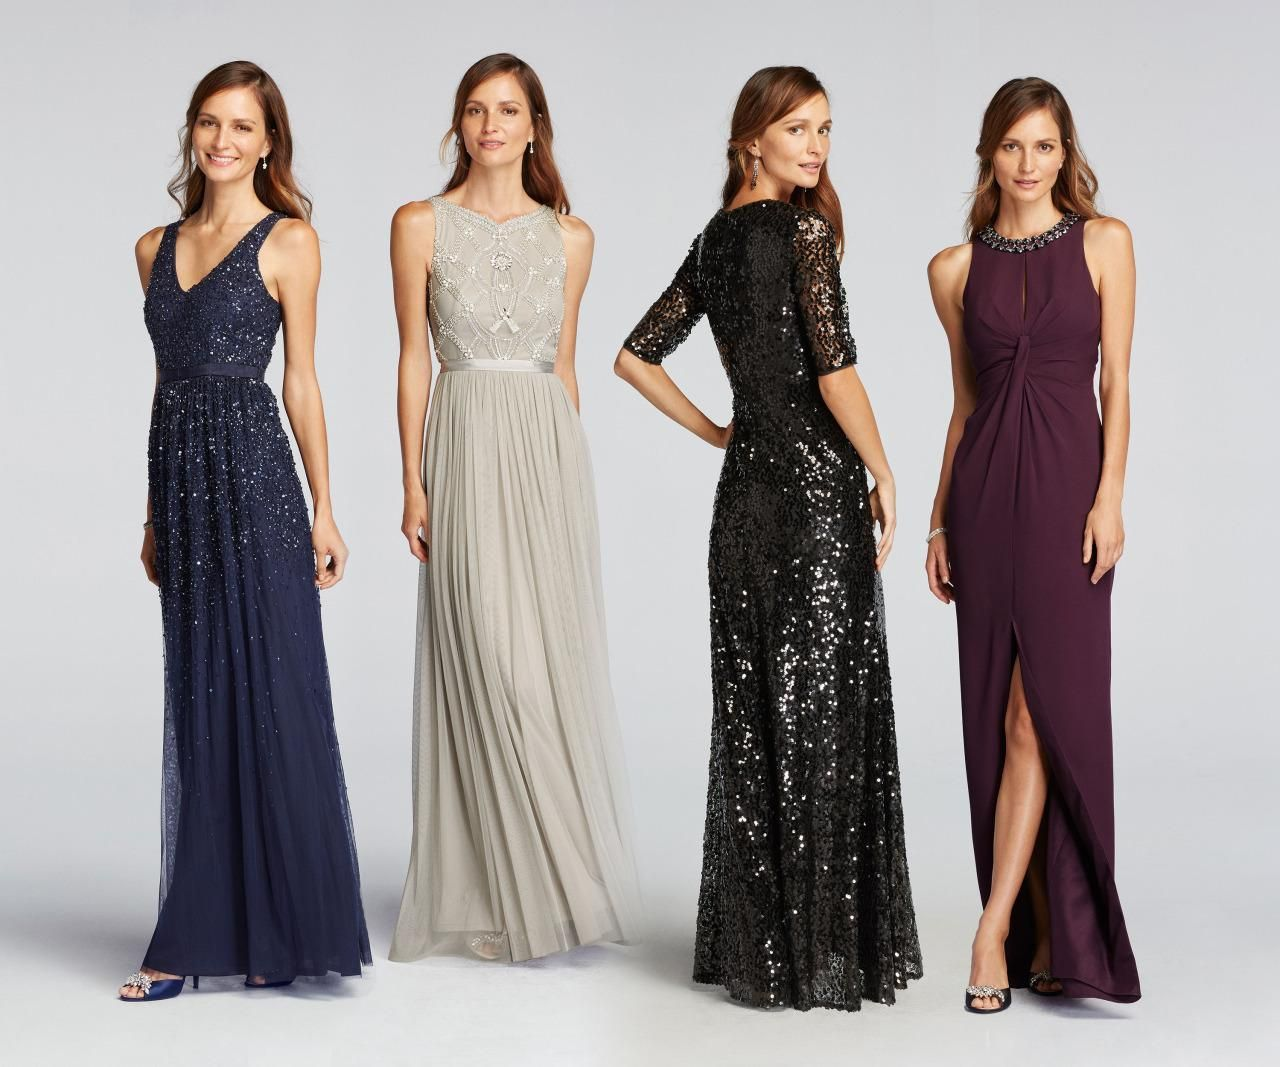 Jenny packhamus new bridal line includes sexy looks for mom jenny